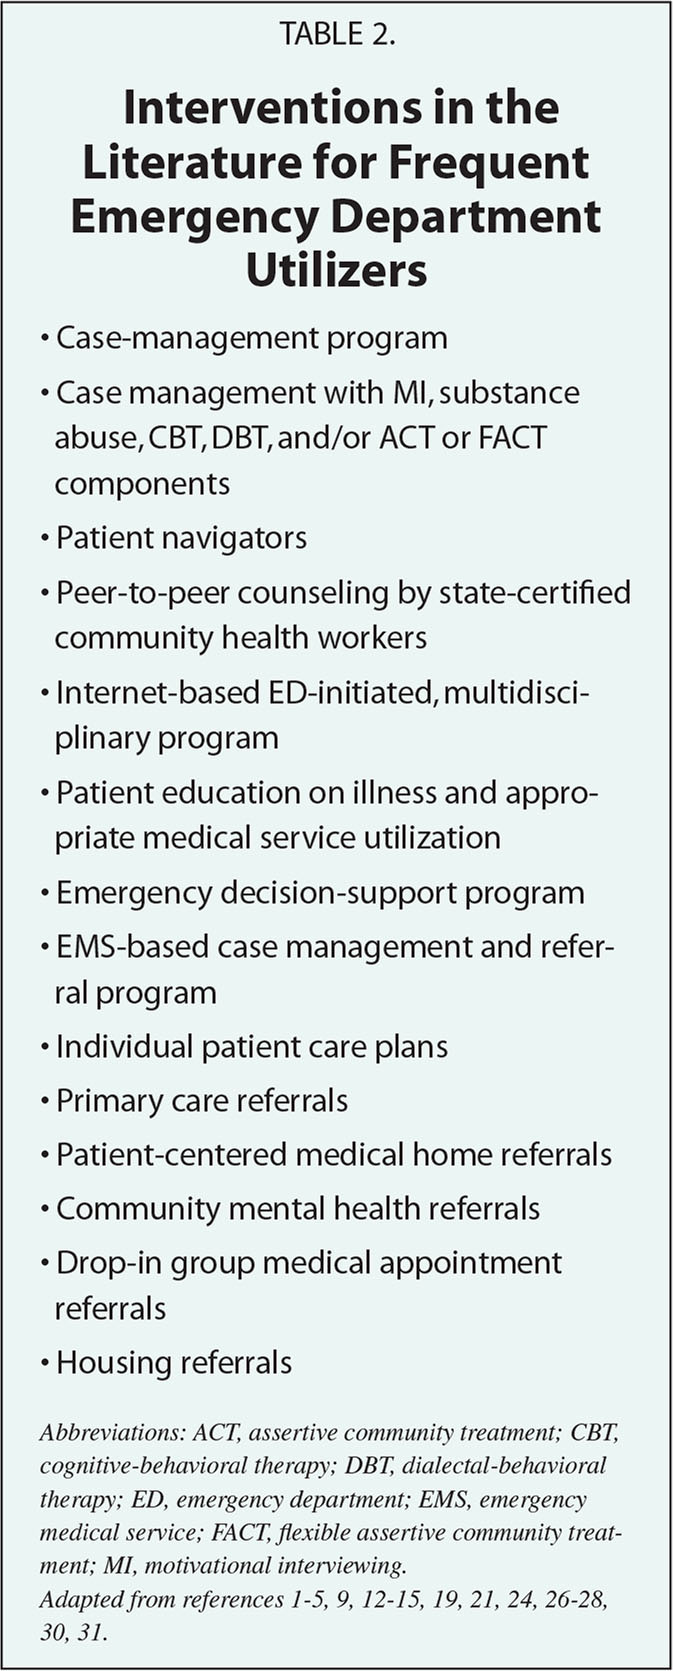 Interventions in the Literature for Frequent Emergency Department Utilizers